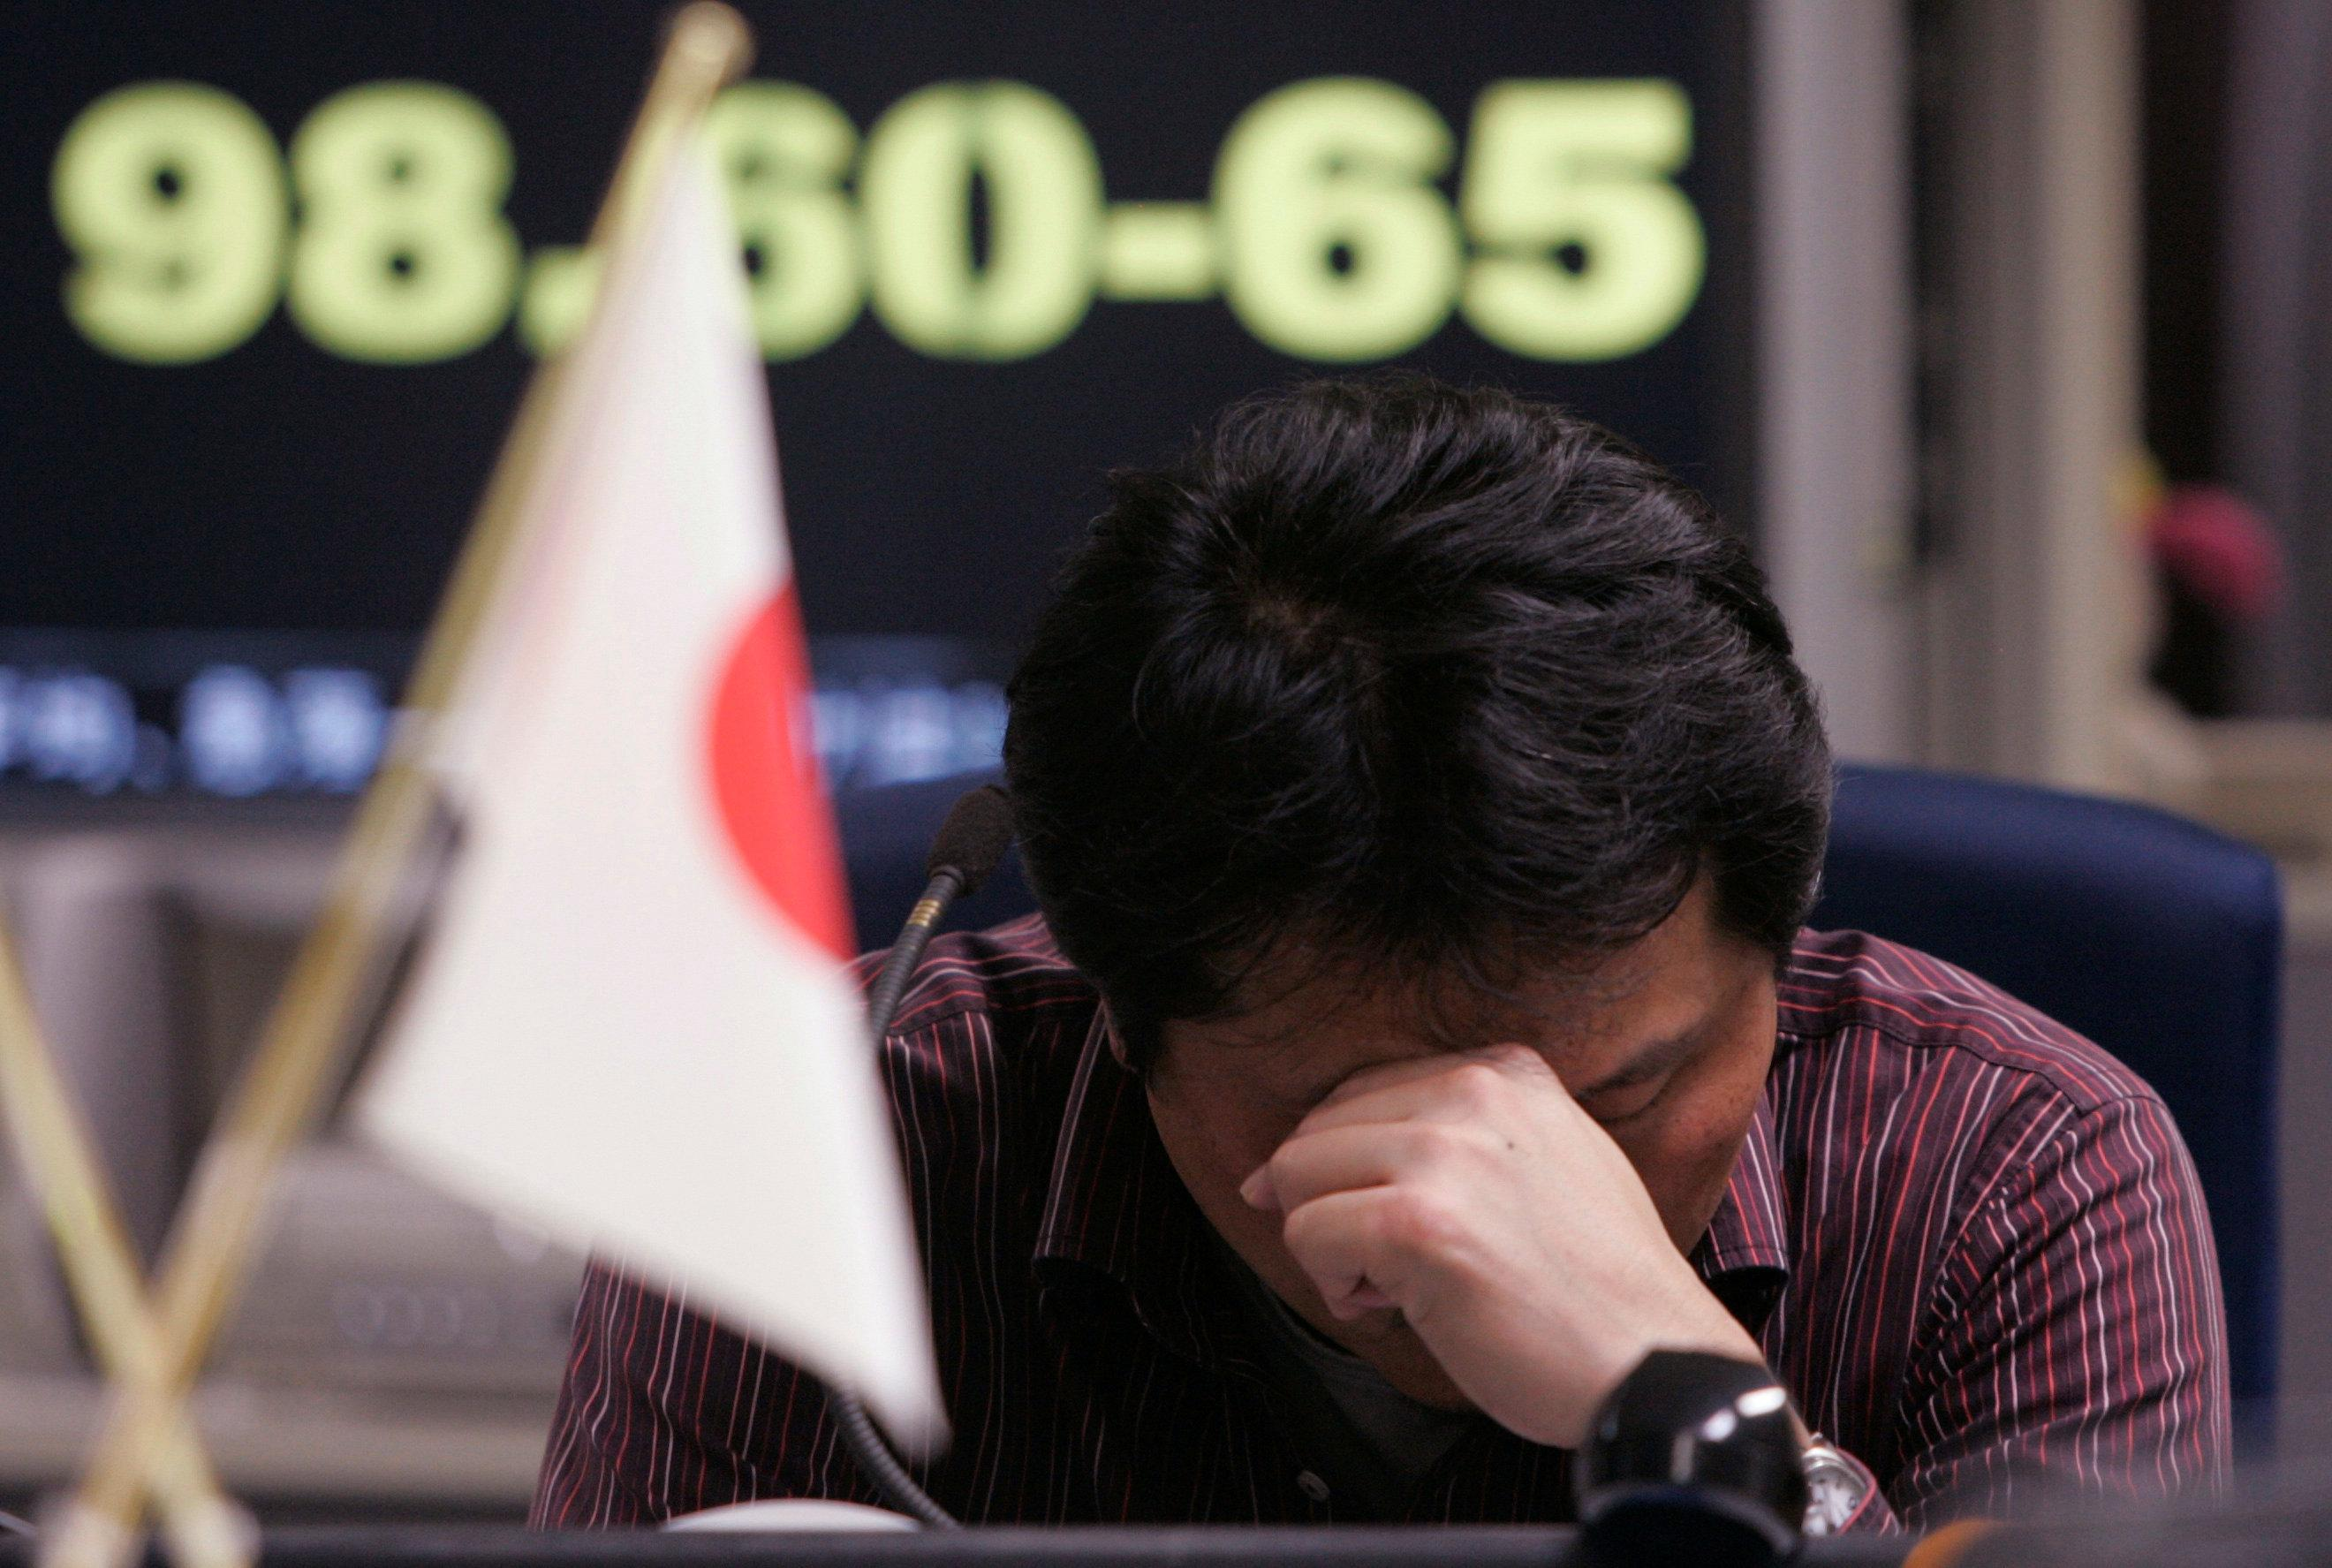 Tsutomu Fukasawa, a dealer, takes a rest at a yen trading room in Tokyo, Japan, October 10, 2008. Yuriko Nakao/File photo